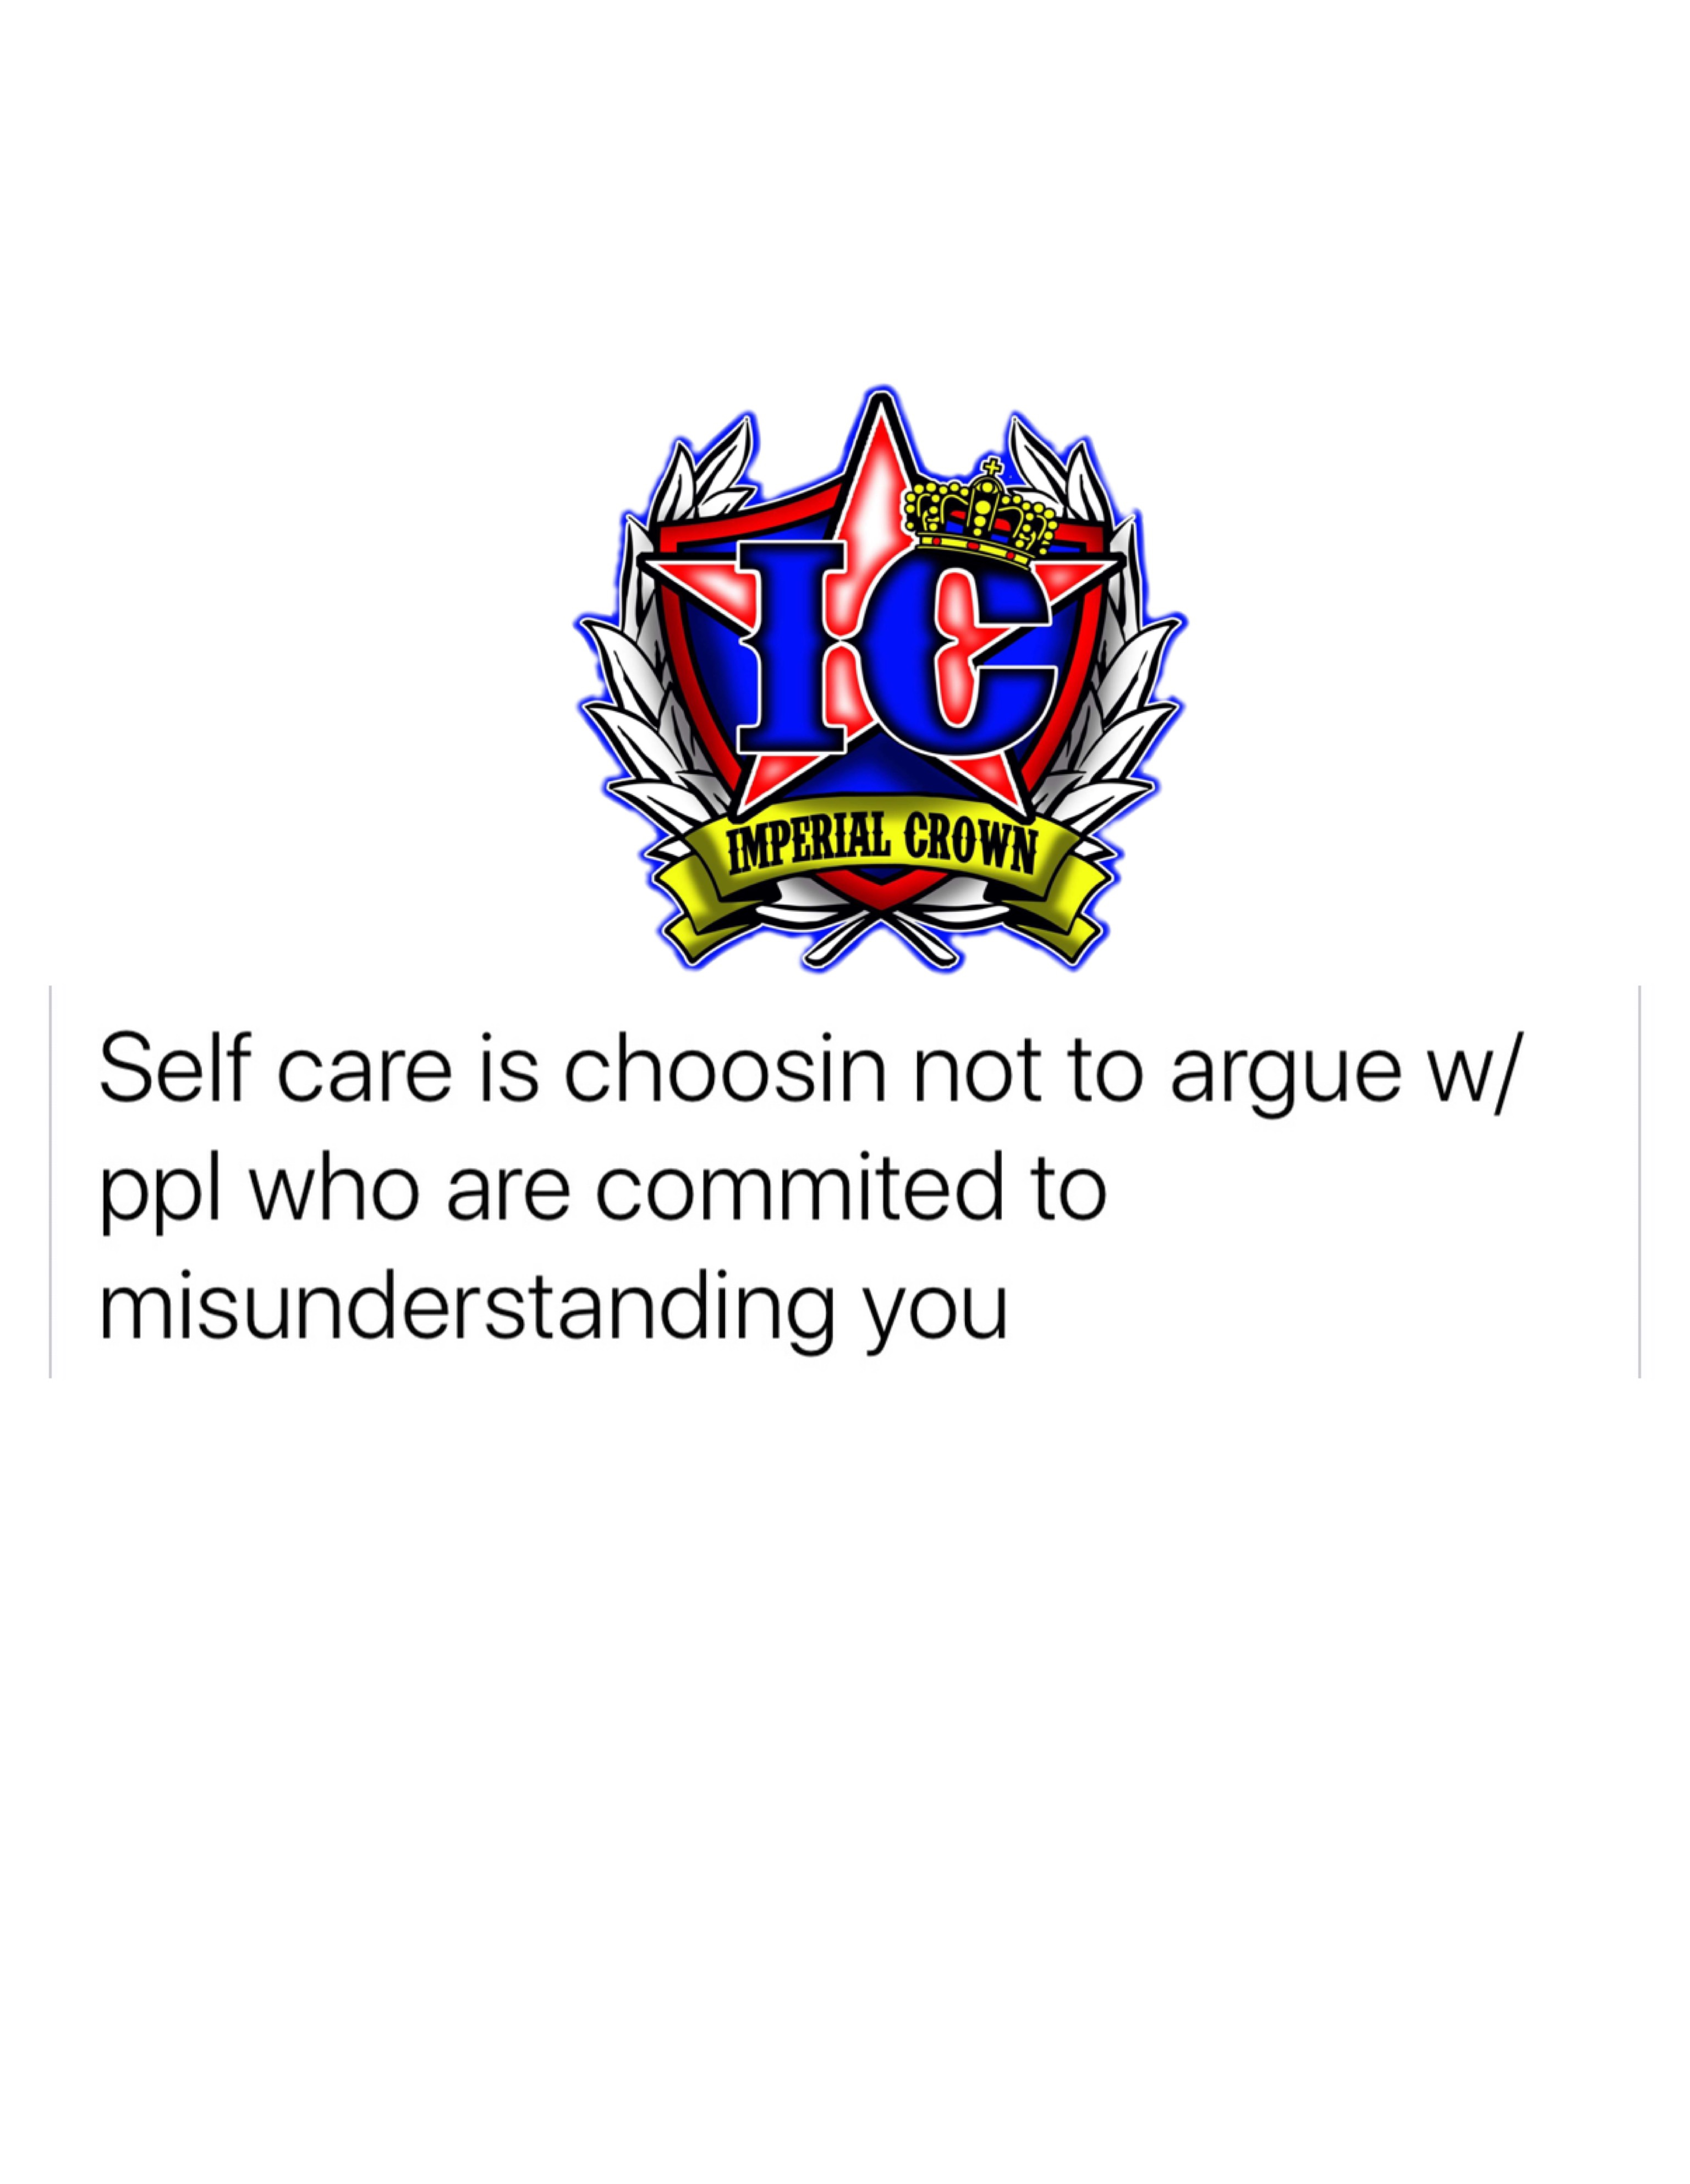 Self care is choosin not to argue w/ ppl who are commited to misunderstanding you